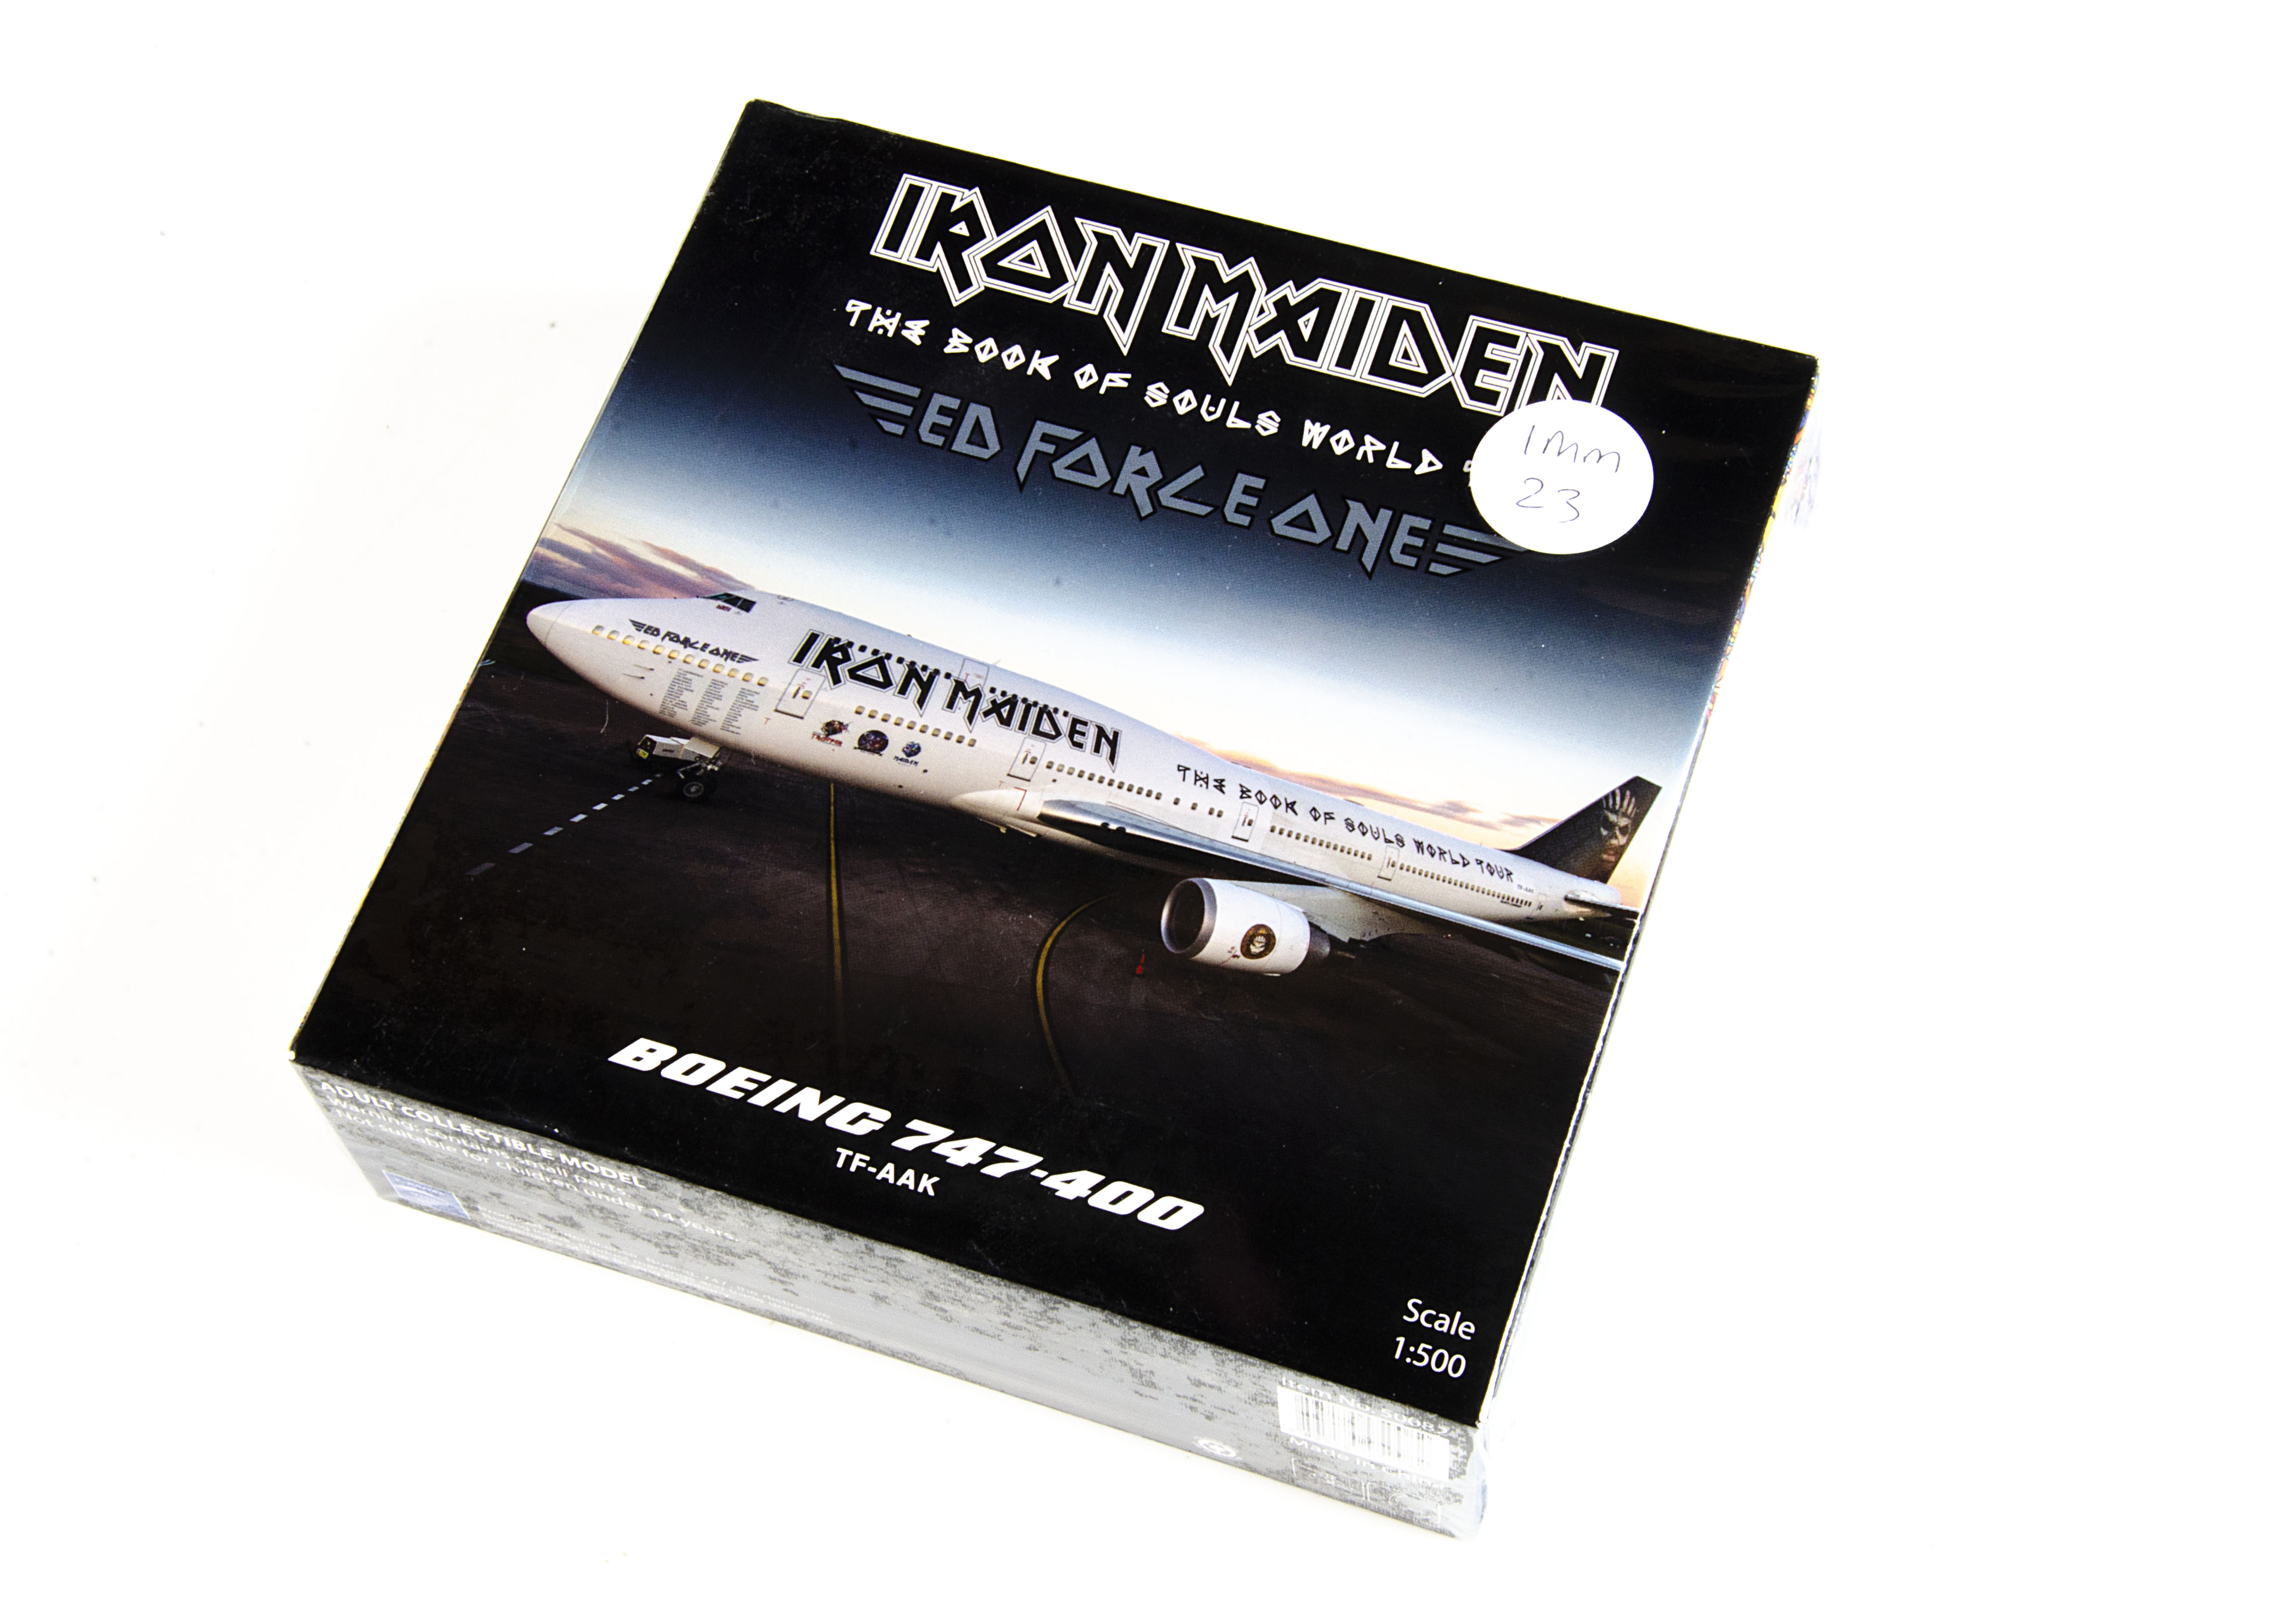 Iron Maiden Aircraft Model, Book Of Souls World Tour - Ed Force One 747-400 1:400 Model Kit 2016